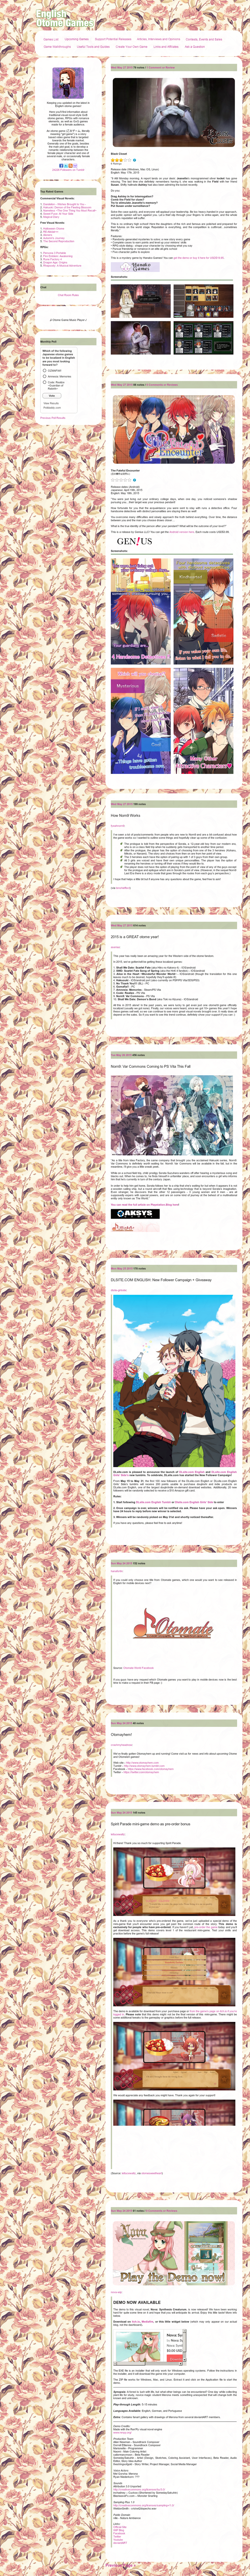 English Otome Games Competitors, Revenue and Employees